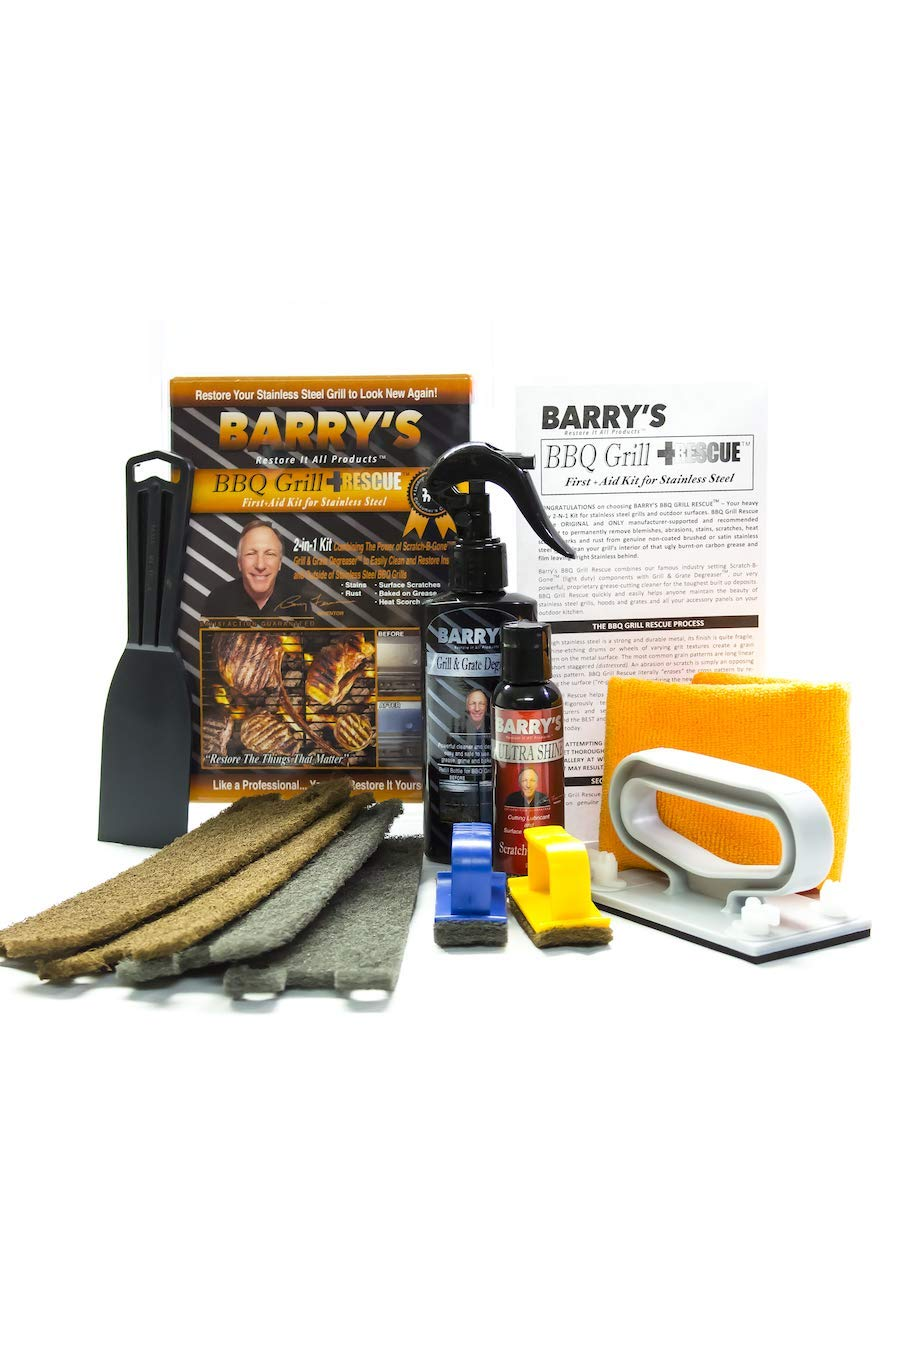 Barry's Restore It All Products - BBQ Grill Rescue Kit